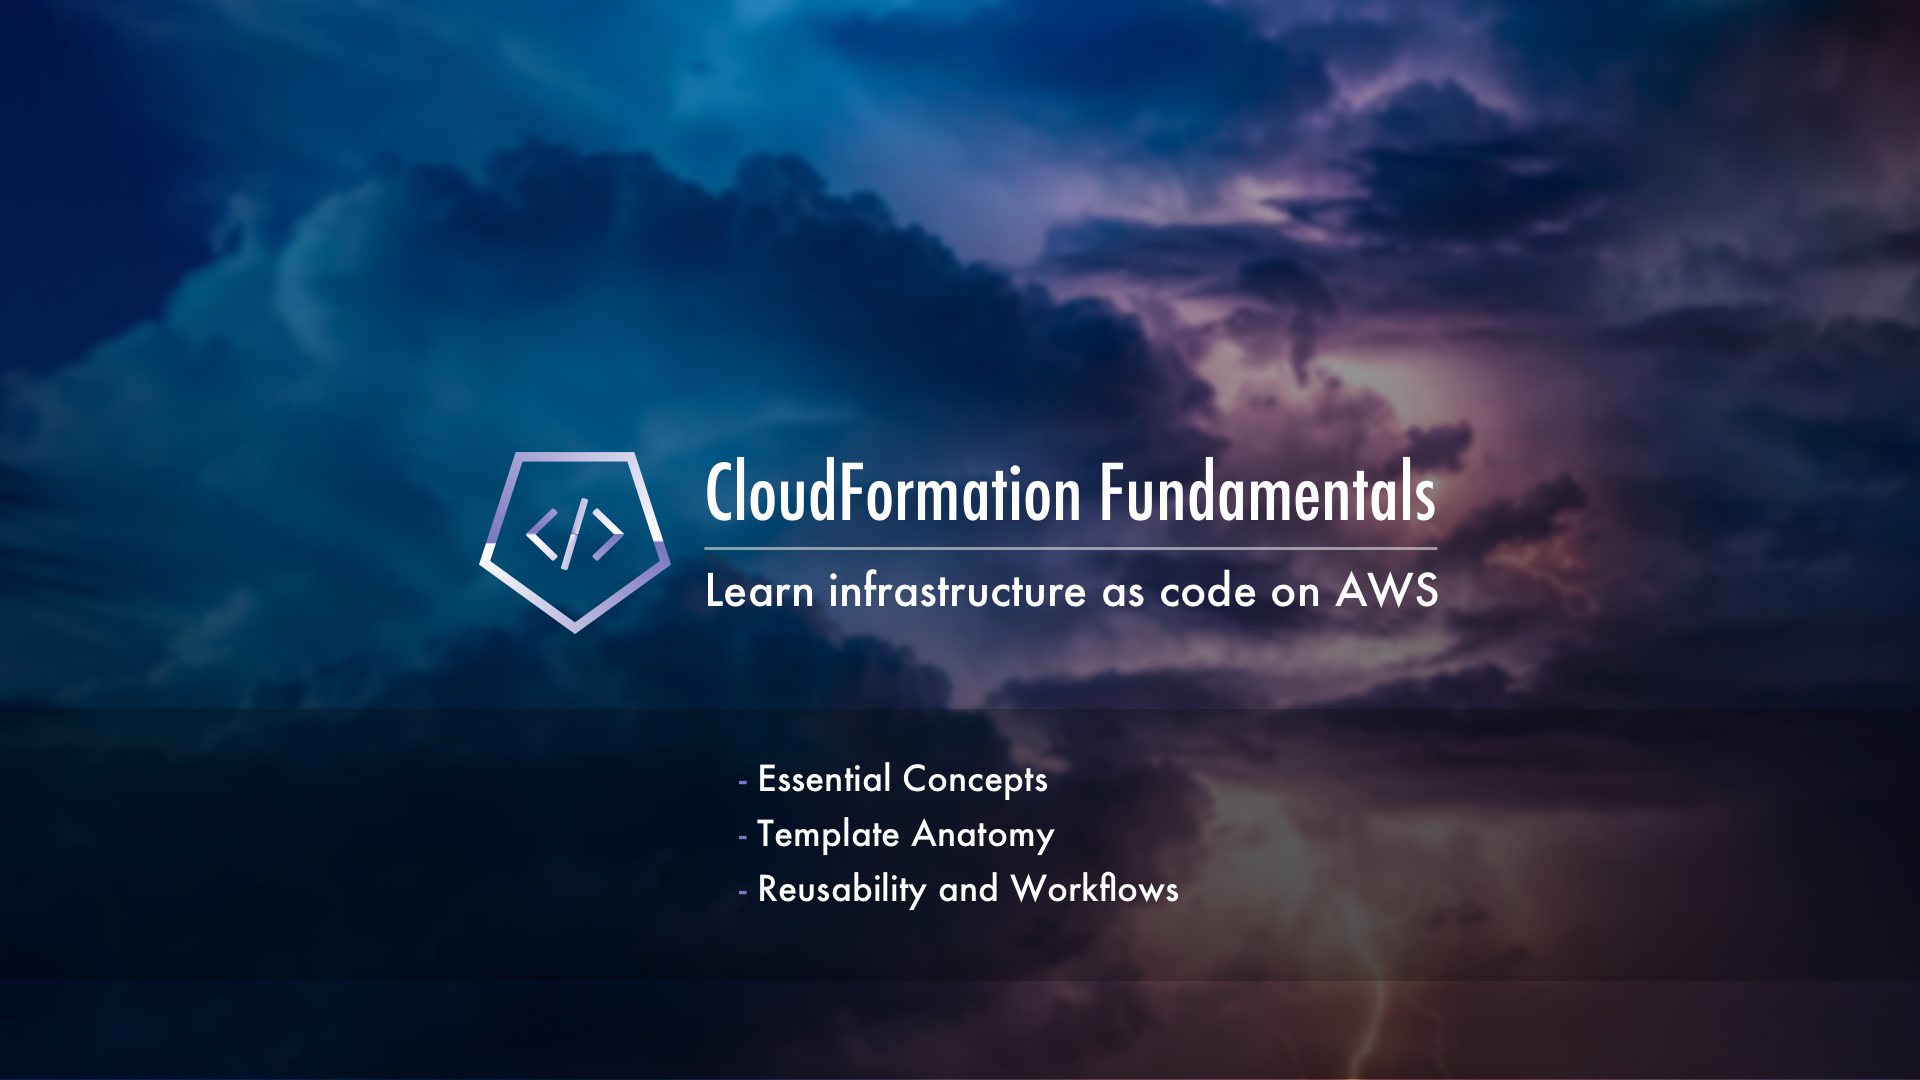 Learn the Essential Concepts and Practices of AWS CloudFormation